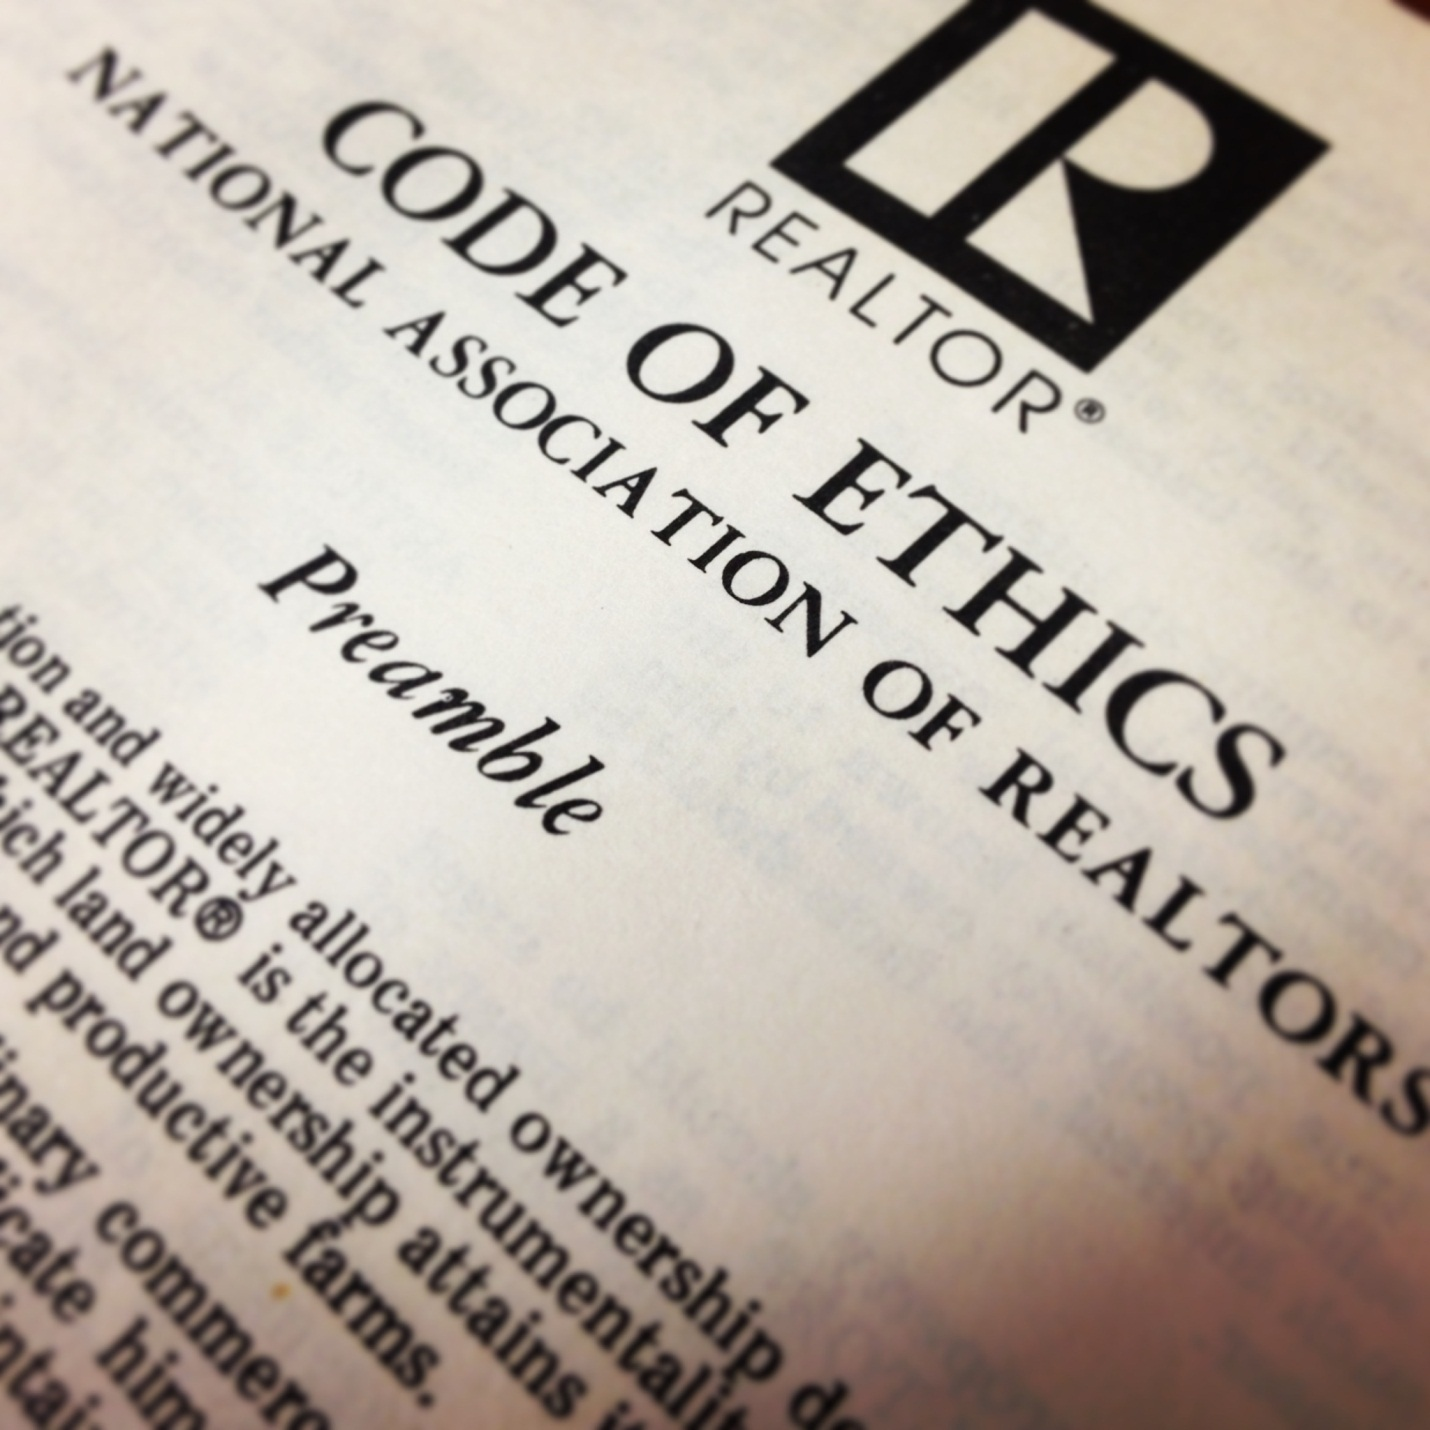 REALTORS® Code of Ethics